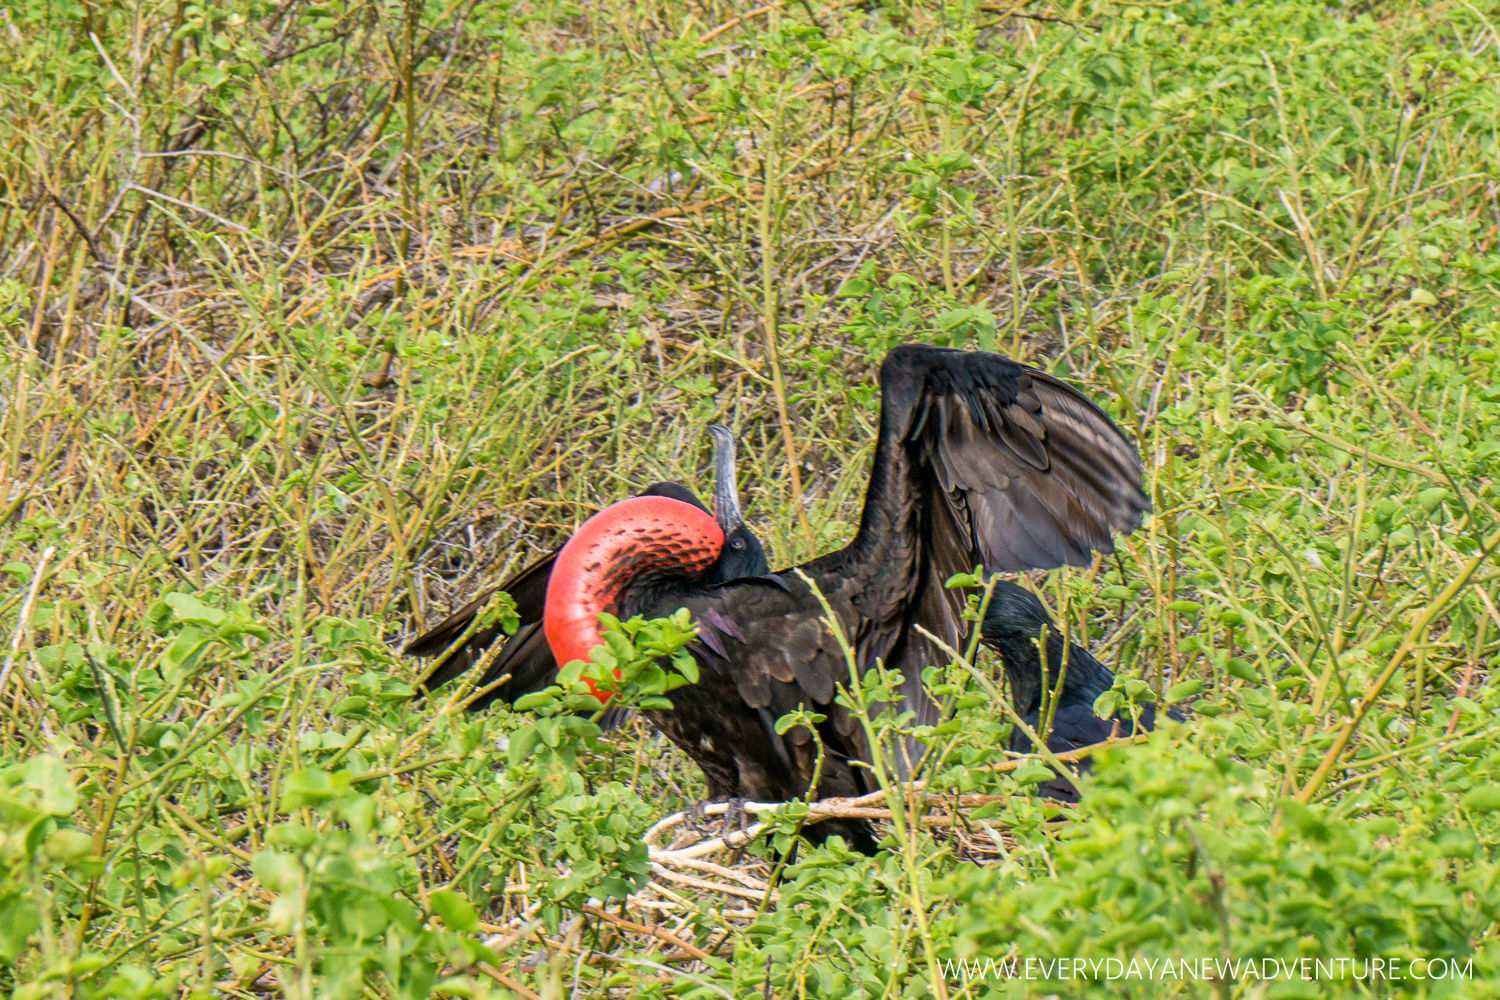 A male frigatebird trying to attract a mate by inflating his red throut pouch. Poor guy was turned down.